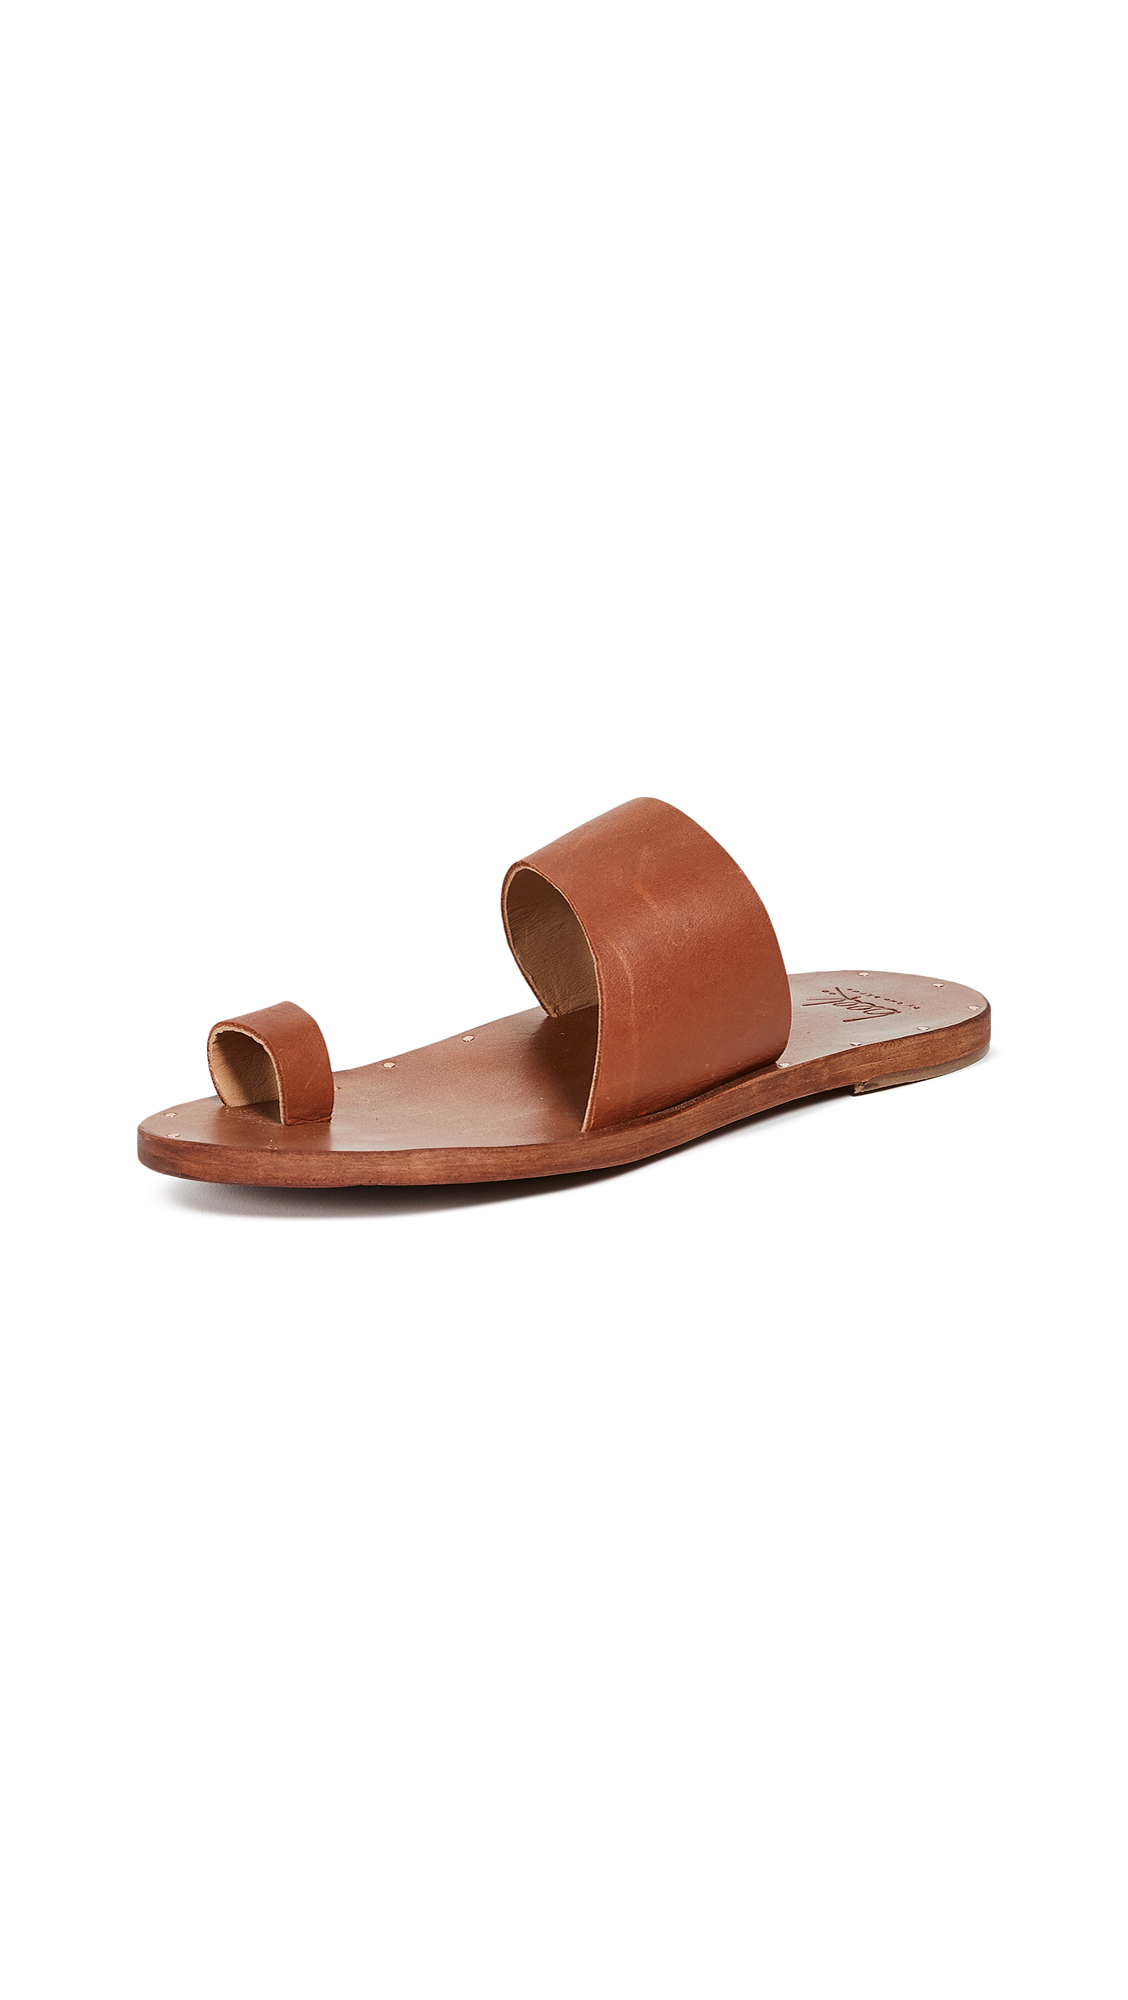 beek Finch Sandals - Tan/Tan